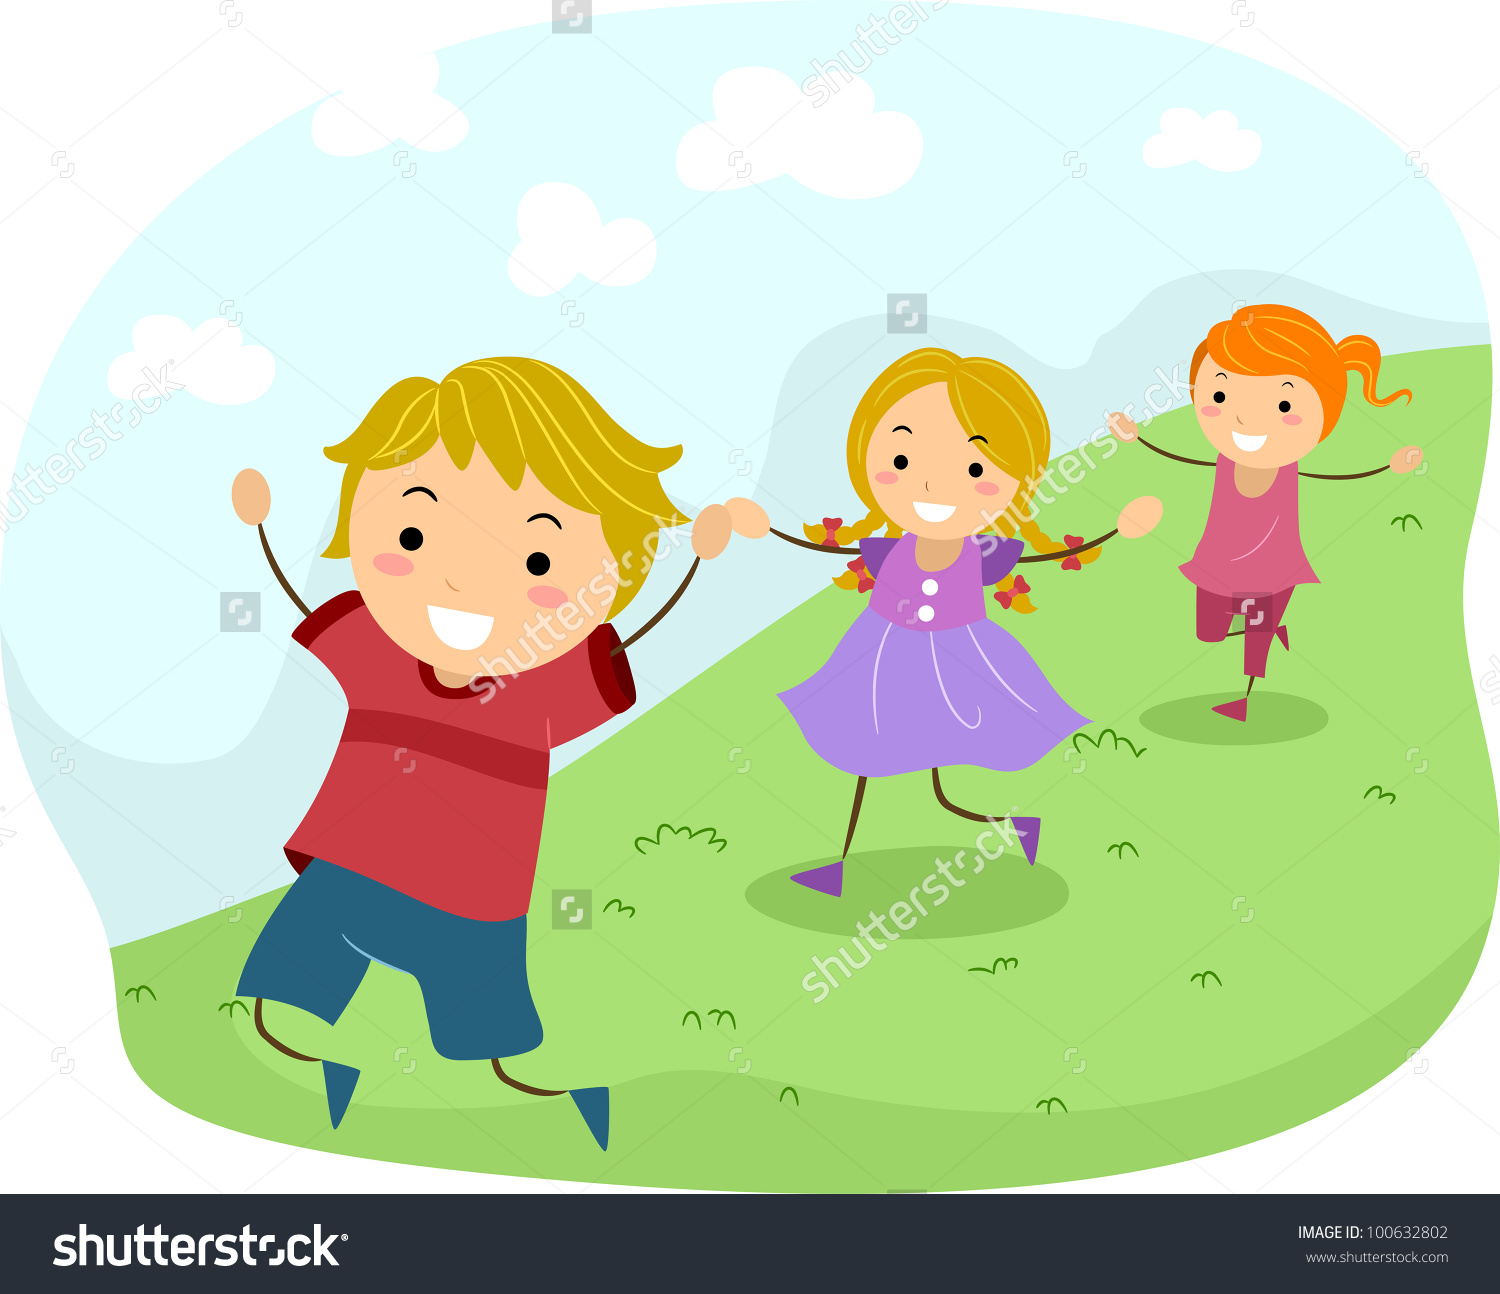 Kids chasing clipart.